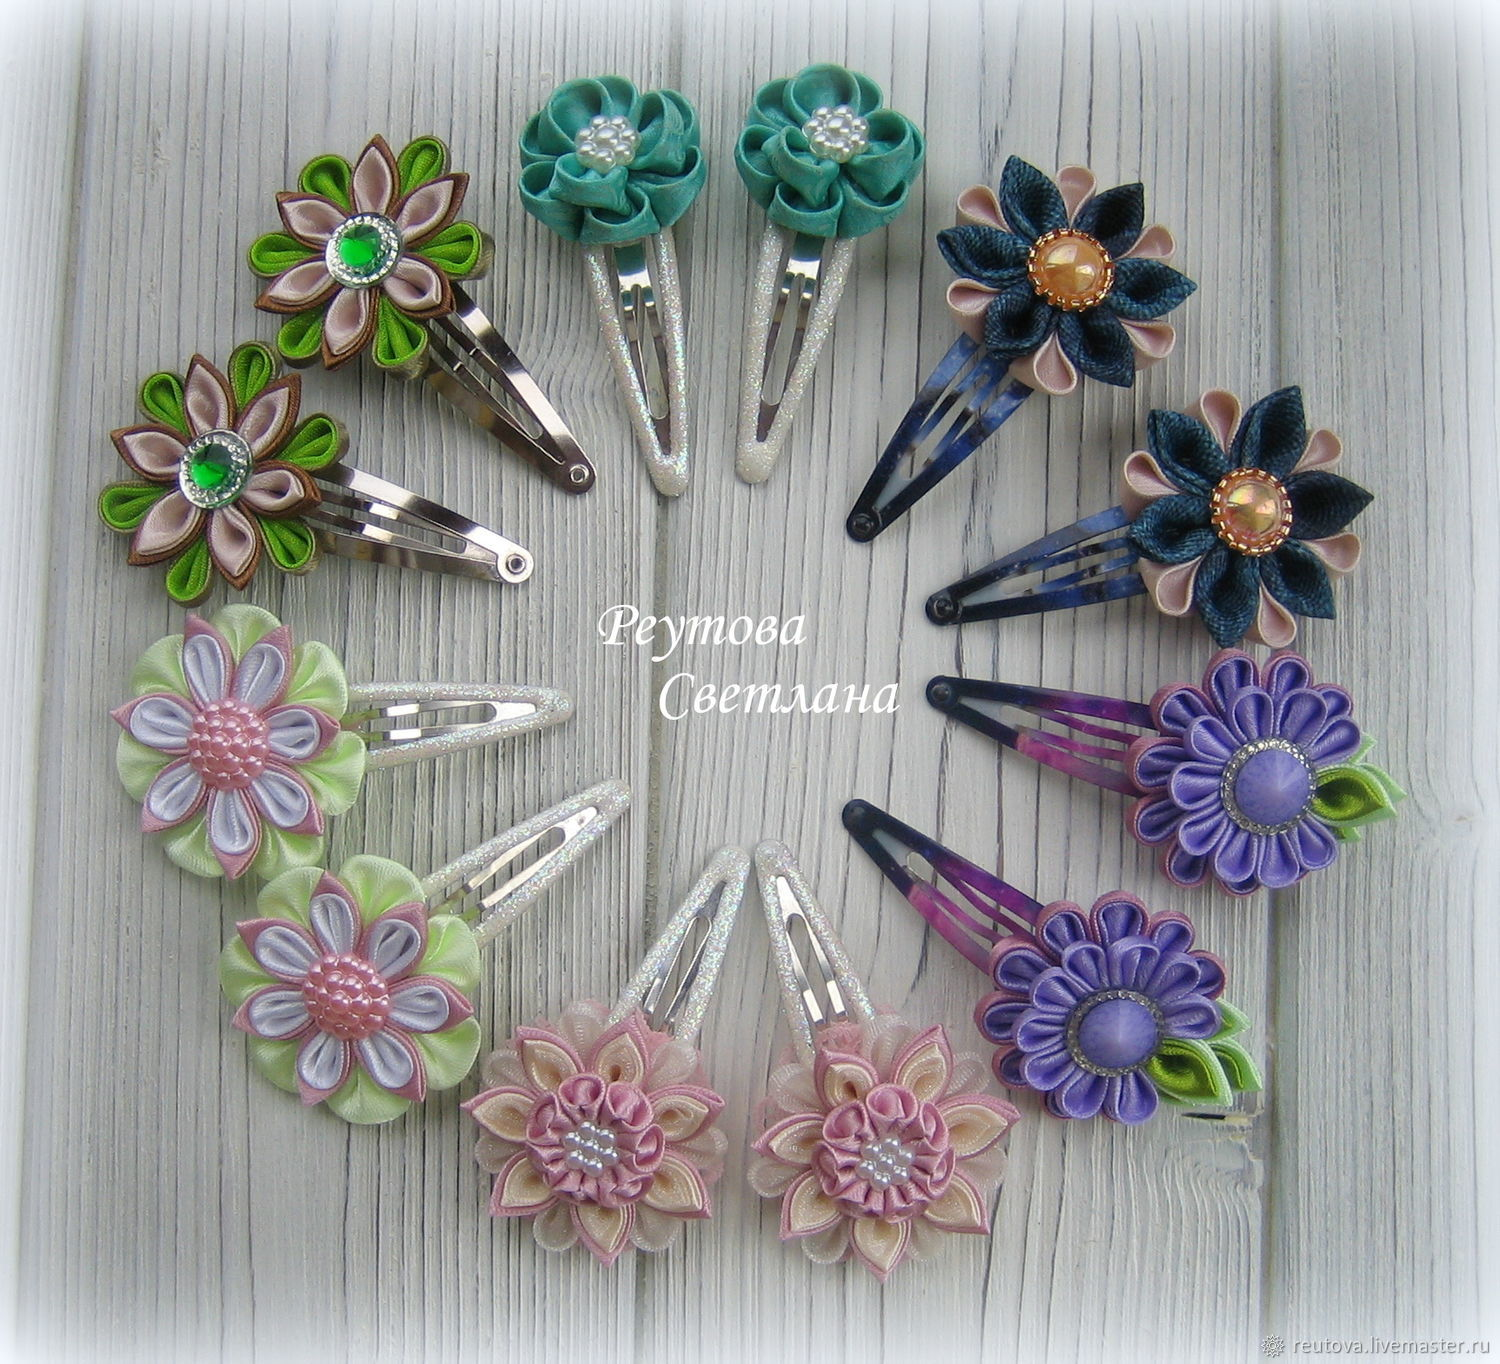 Hair clips with Pink flowers - 400 RUB/pair of hair Clips with Iavicoli - 350 RUB/pair